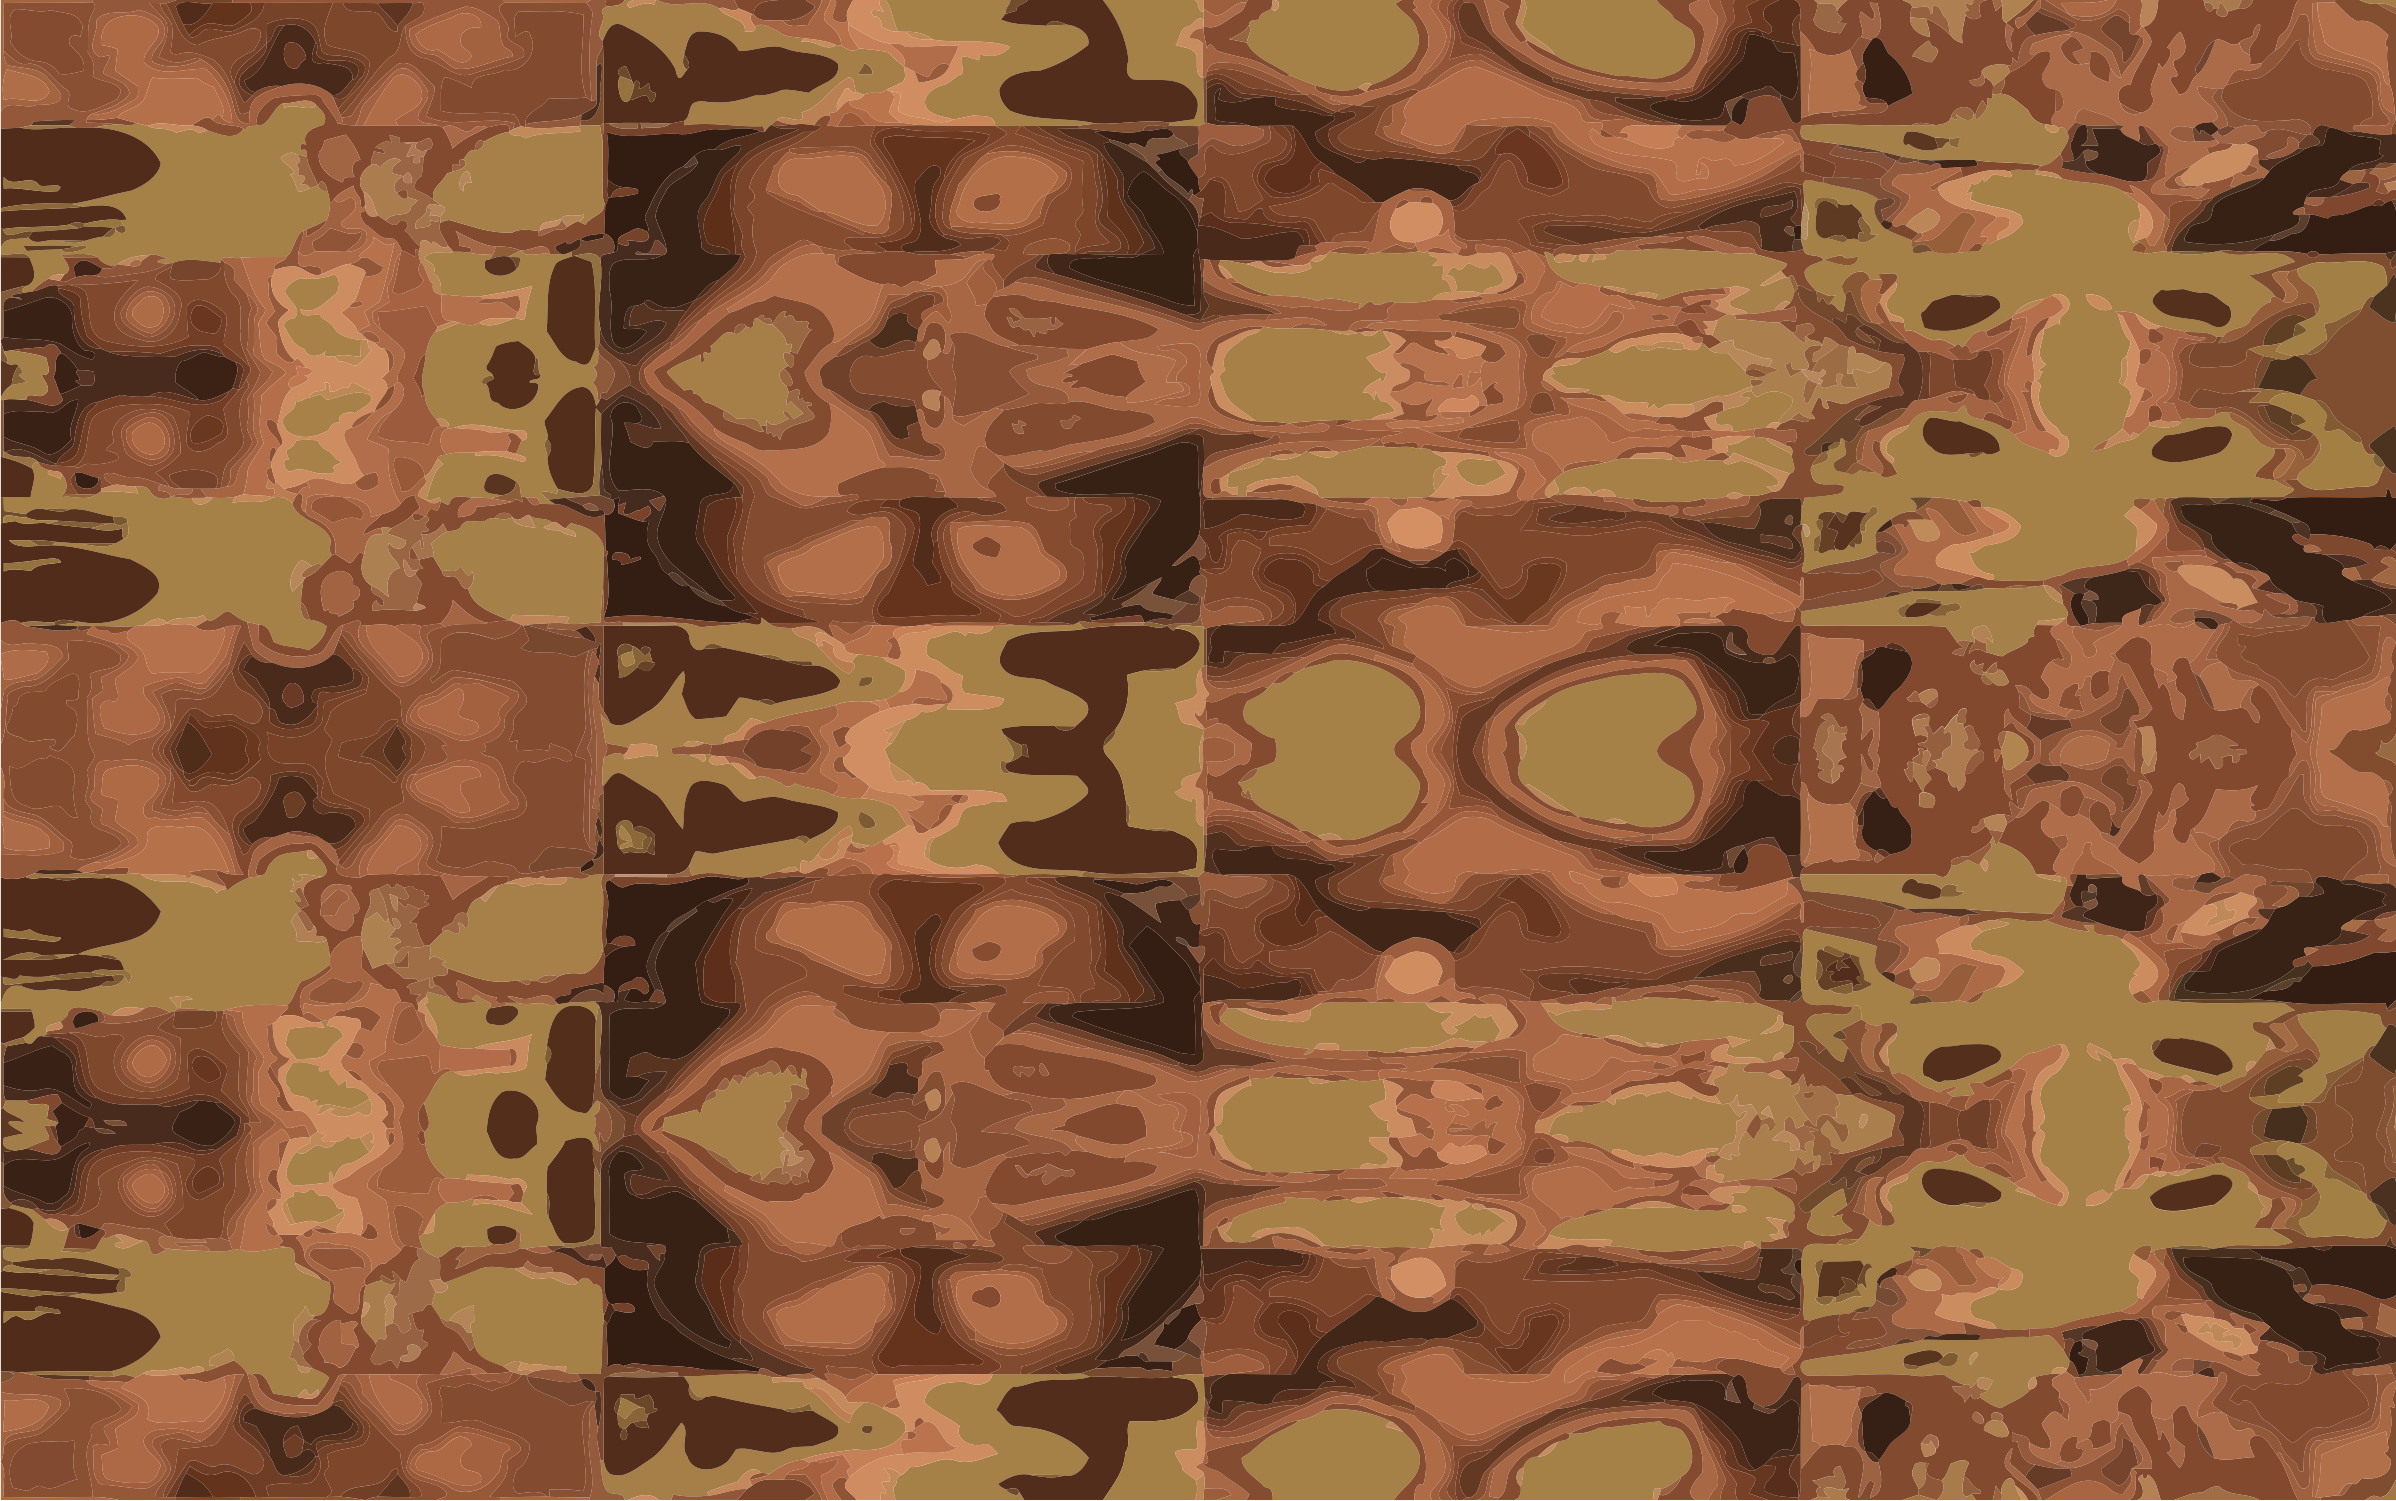 Abstract Background - Wallpaper 6 v2 by TikiGiki